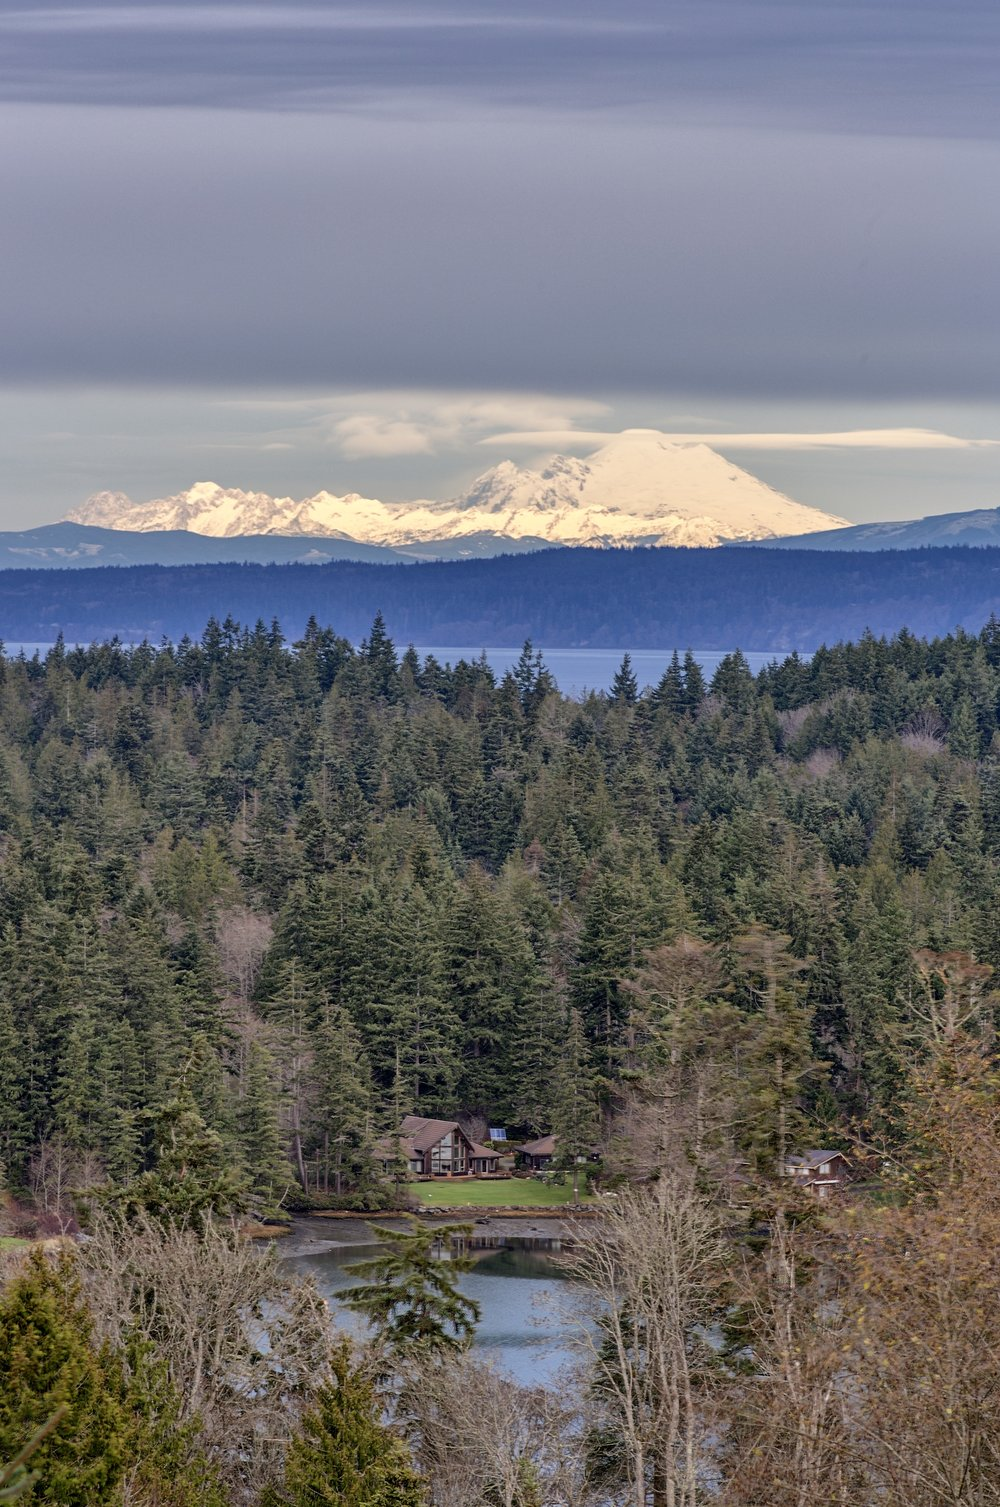 Mt. Baker with Mats Mats Bay in the foreground; shot today in Port Ludlow